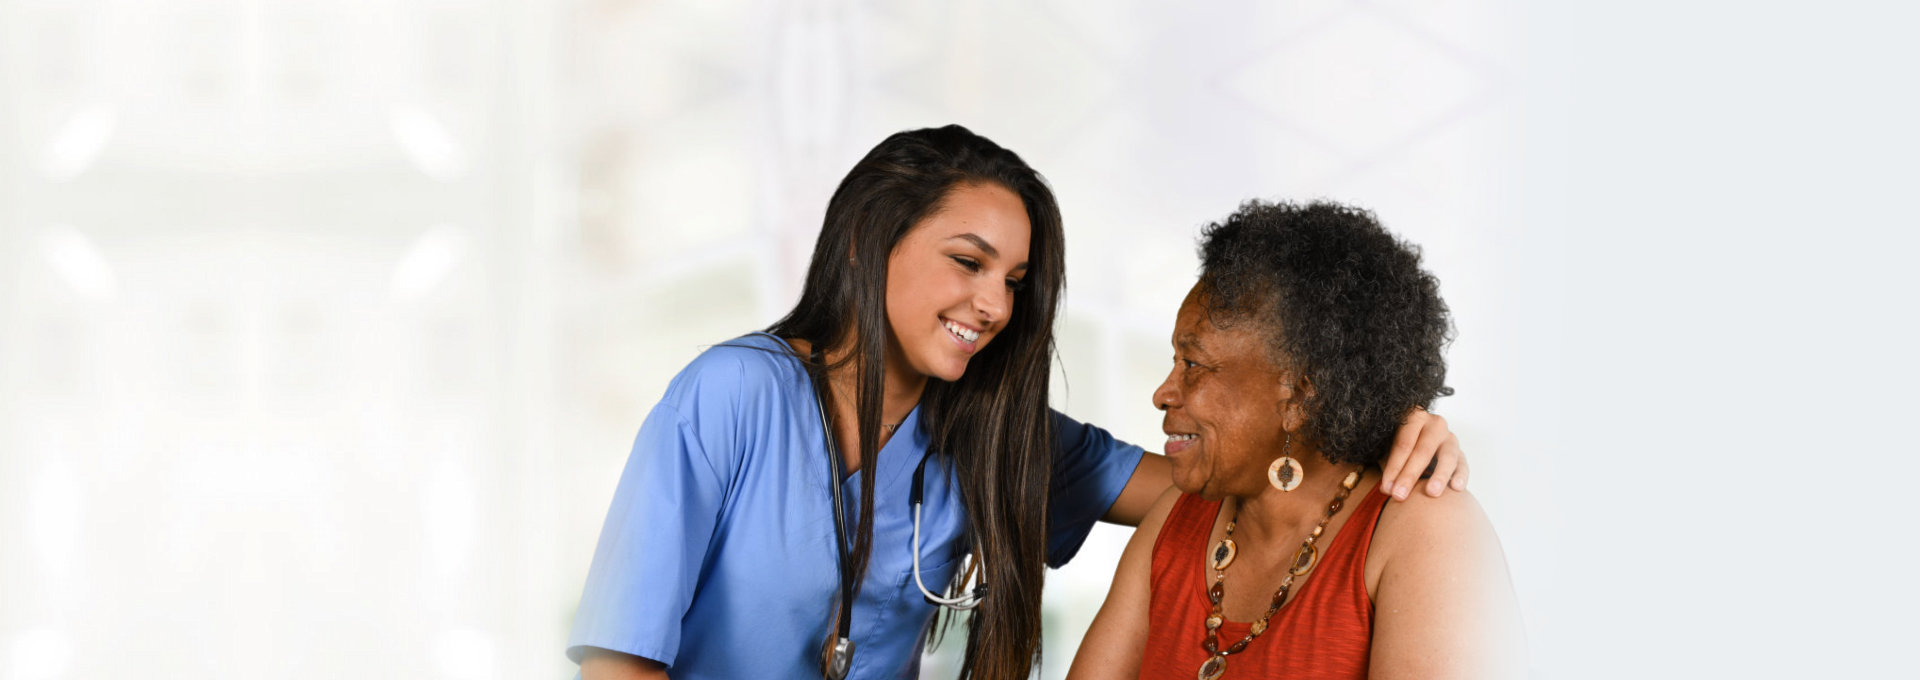 caregiver and elderly woman smiling with each other